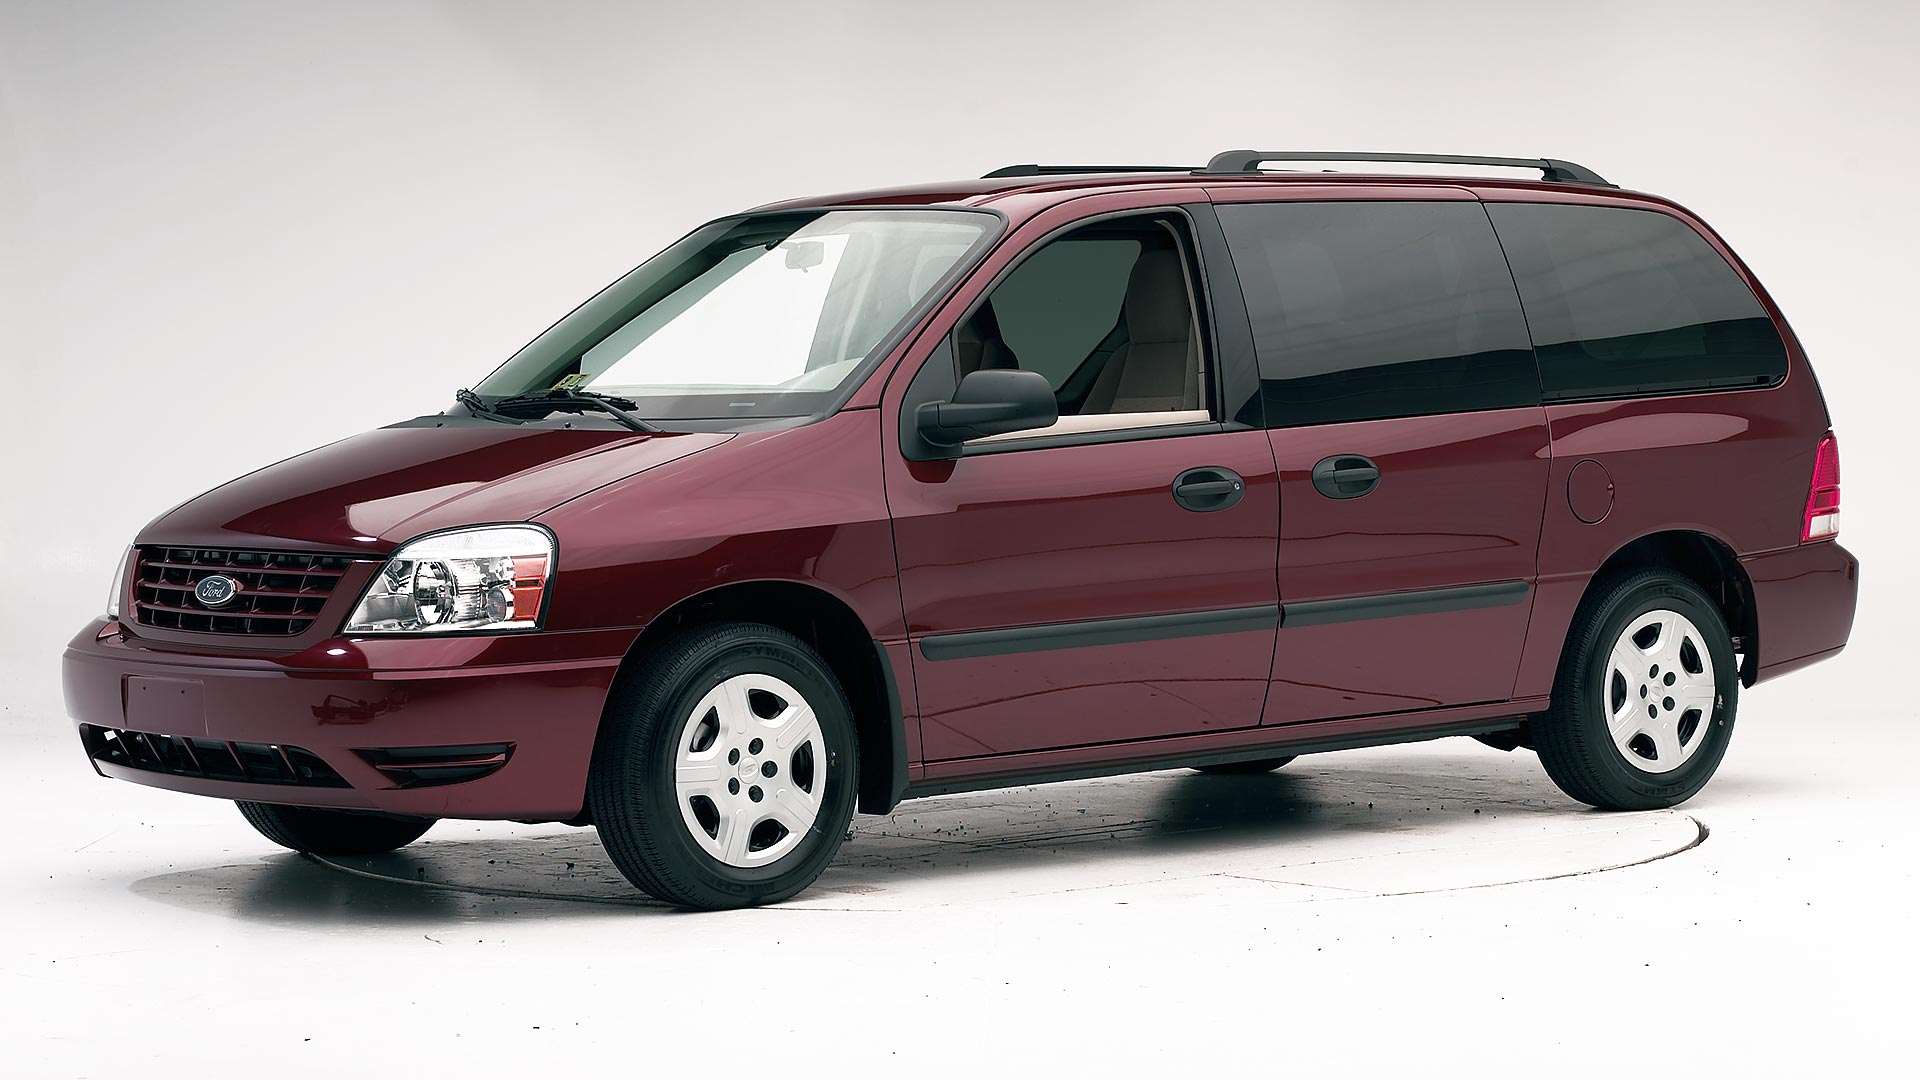 2006 Ford Freestar Minivan